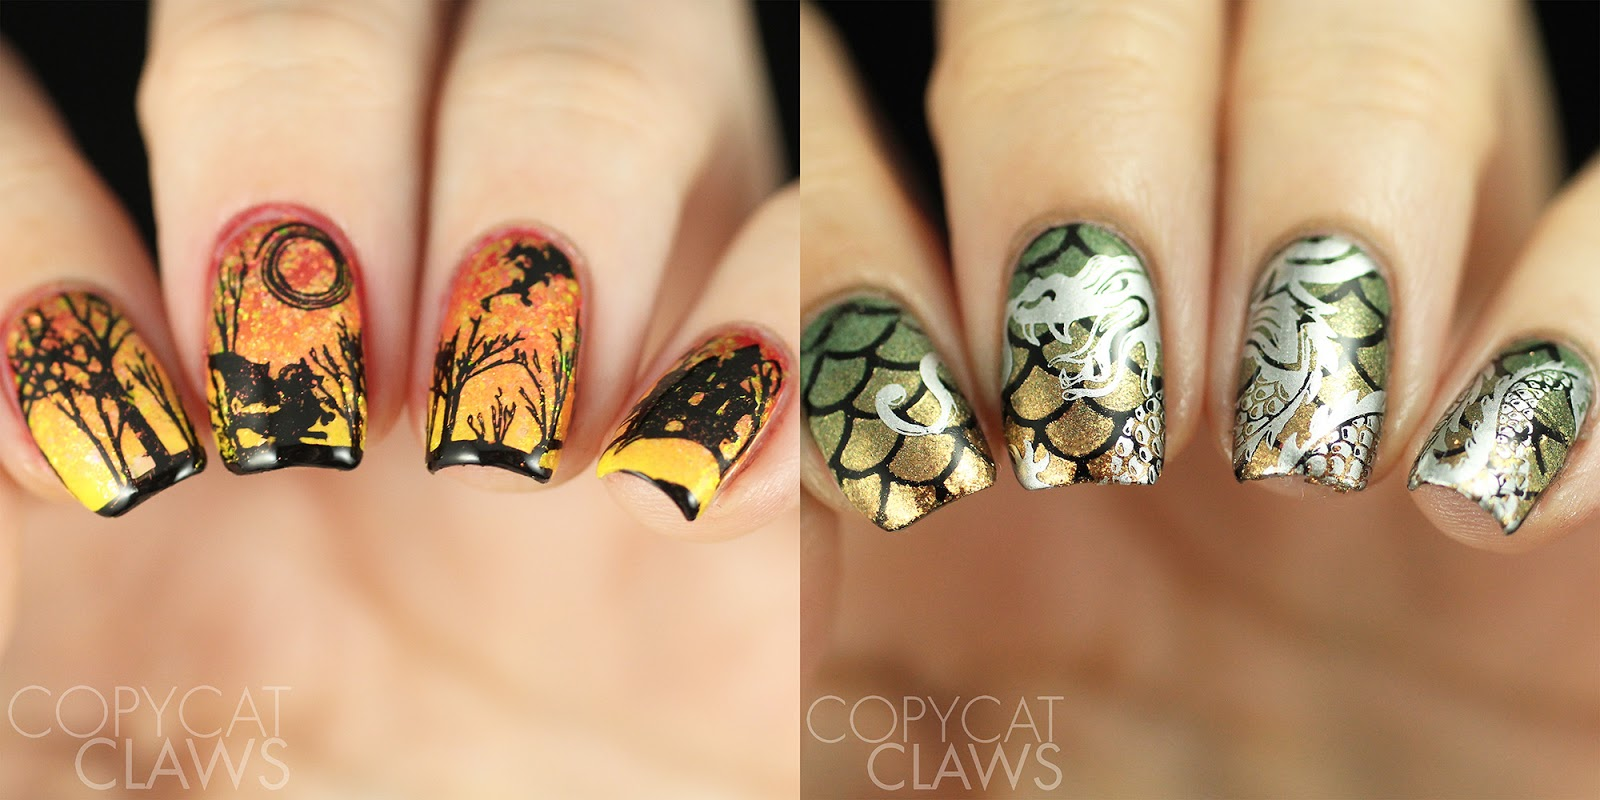 Copycat Claws Dragon Nails With Whats Up Nails Tropic Flakies And